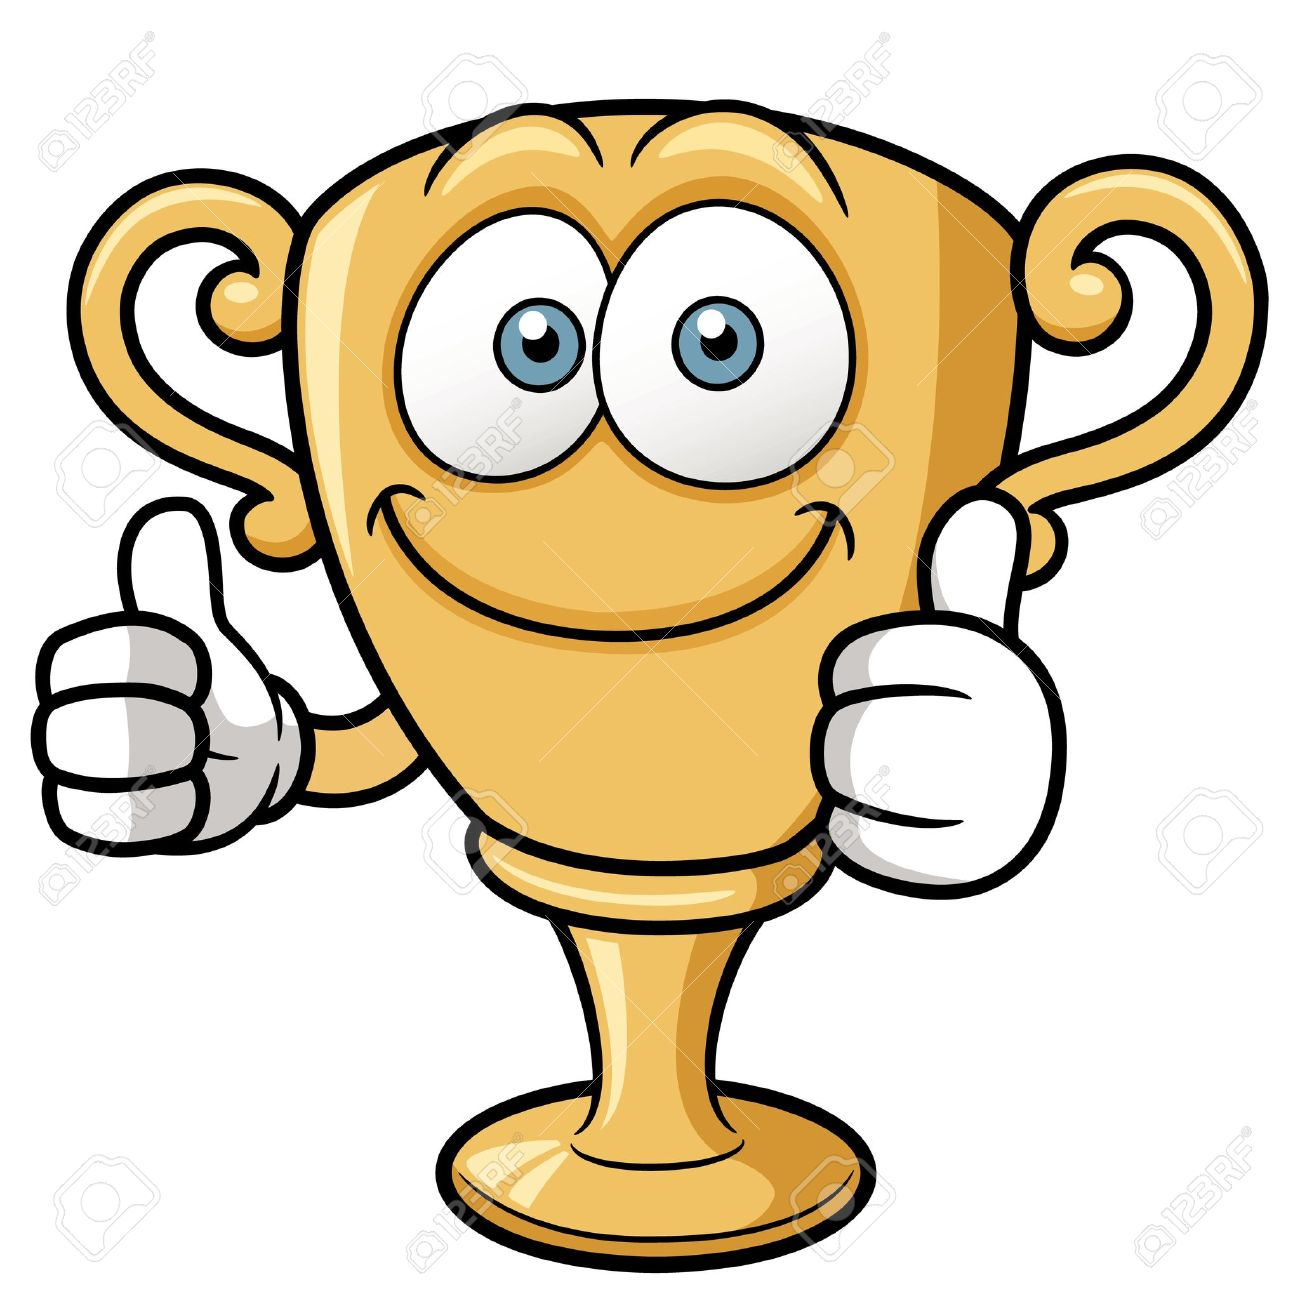 Award clipart cartoon. Prize free download best